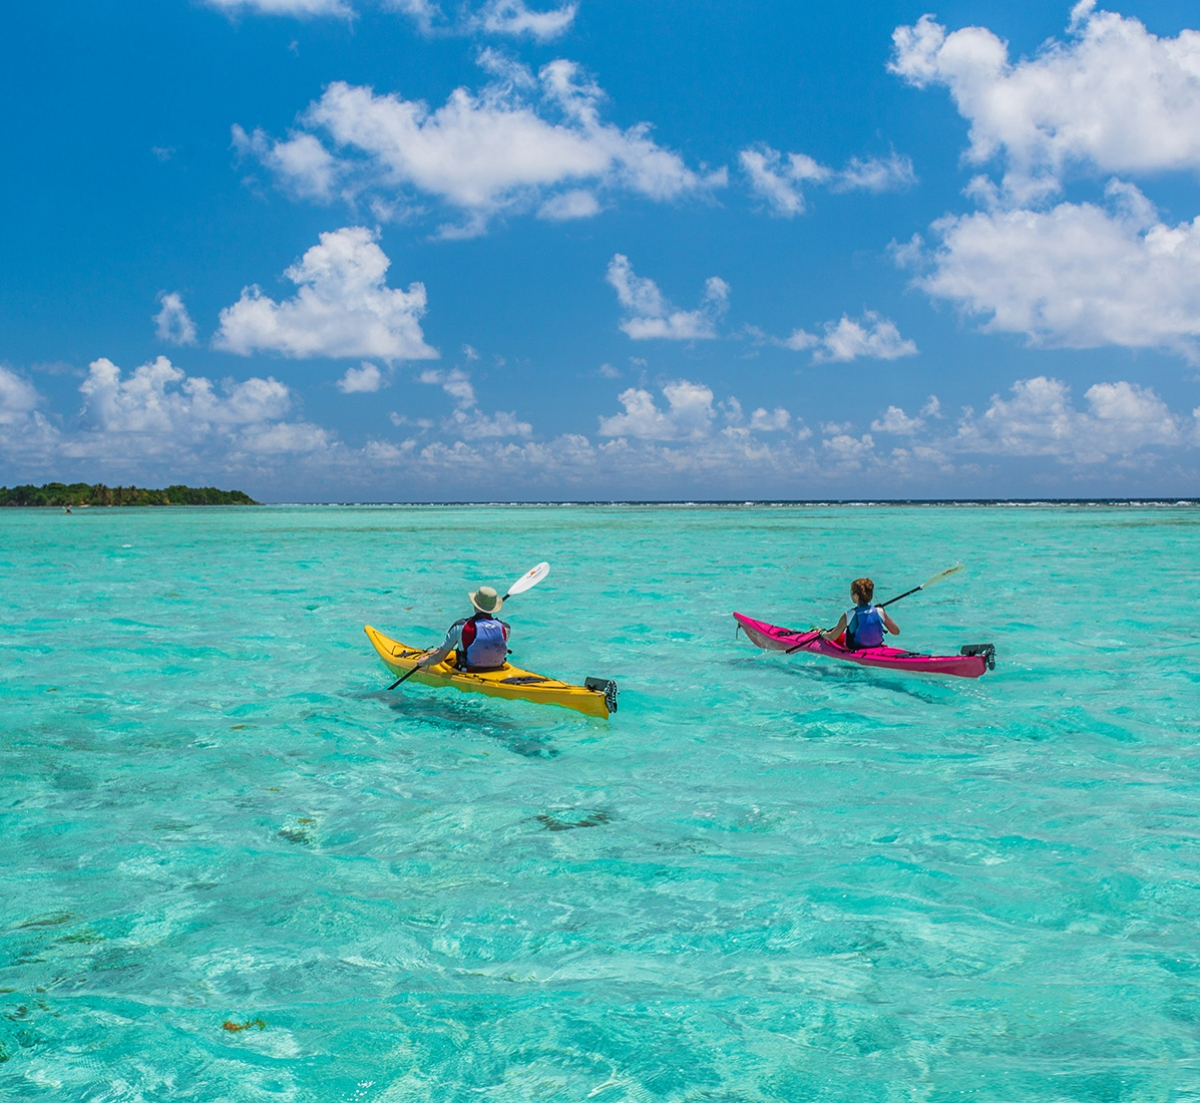 Kayaking on Glover's Reef, Belize